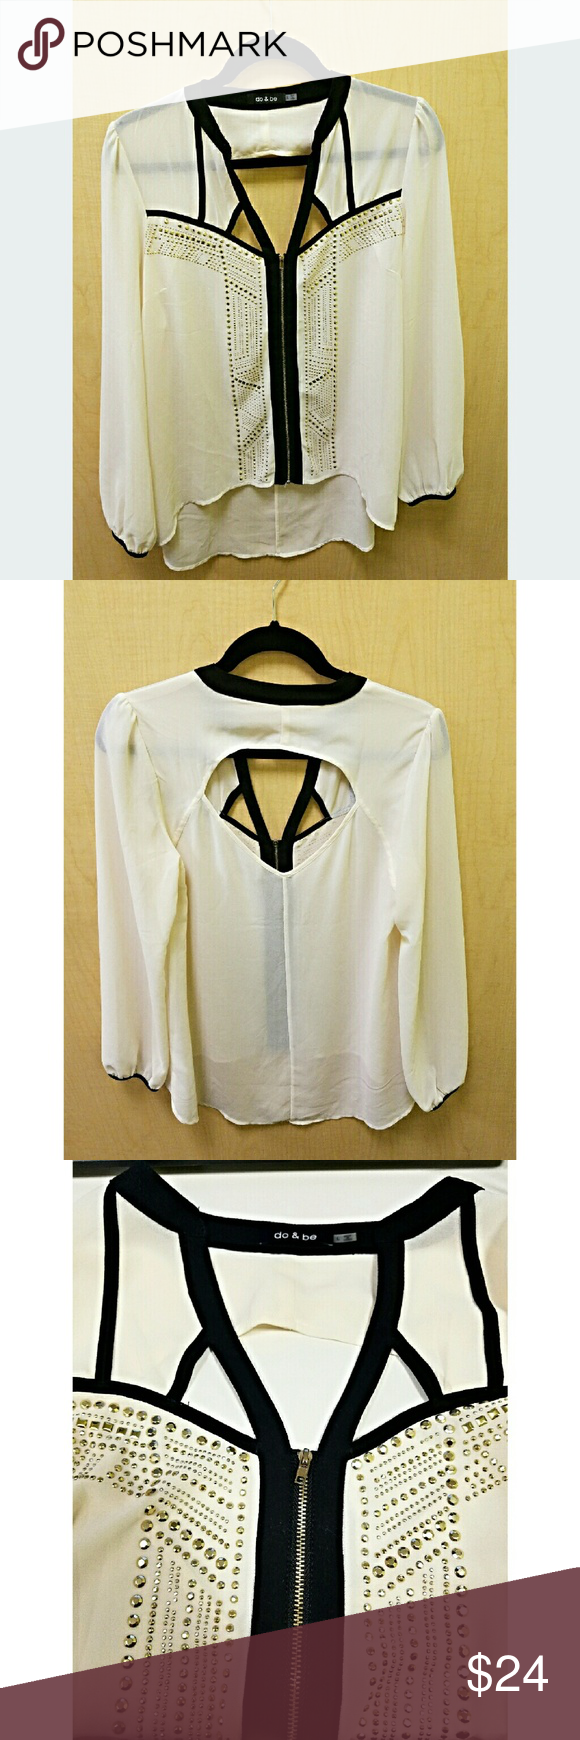 """NWOT Do & Be Cutout Studded Blouse This sheer ivory blouse has two cutouts on the front and one large cutout on the back, black accents and studs adorning the front.  - Brand new, never worn - Front 25.5"""", back 31"""" Do & Be Tops Blouses"""